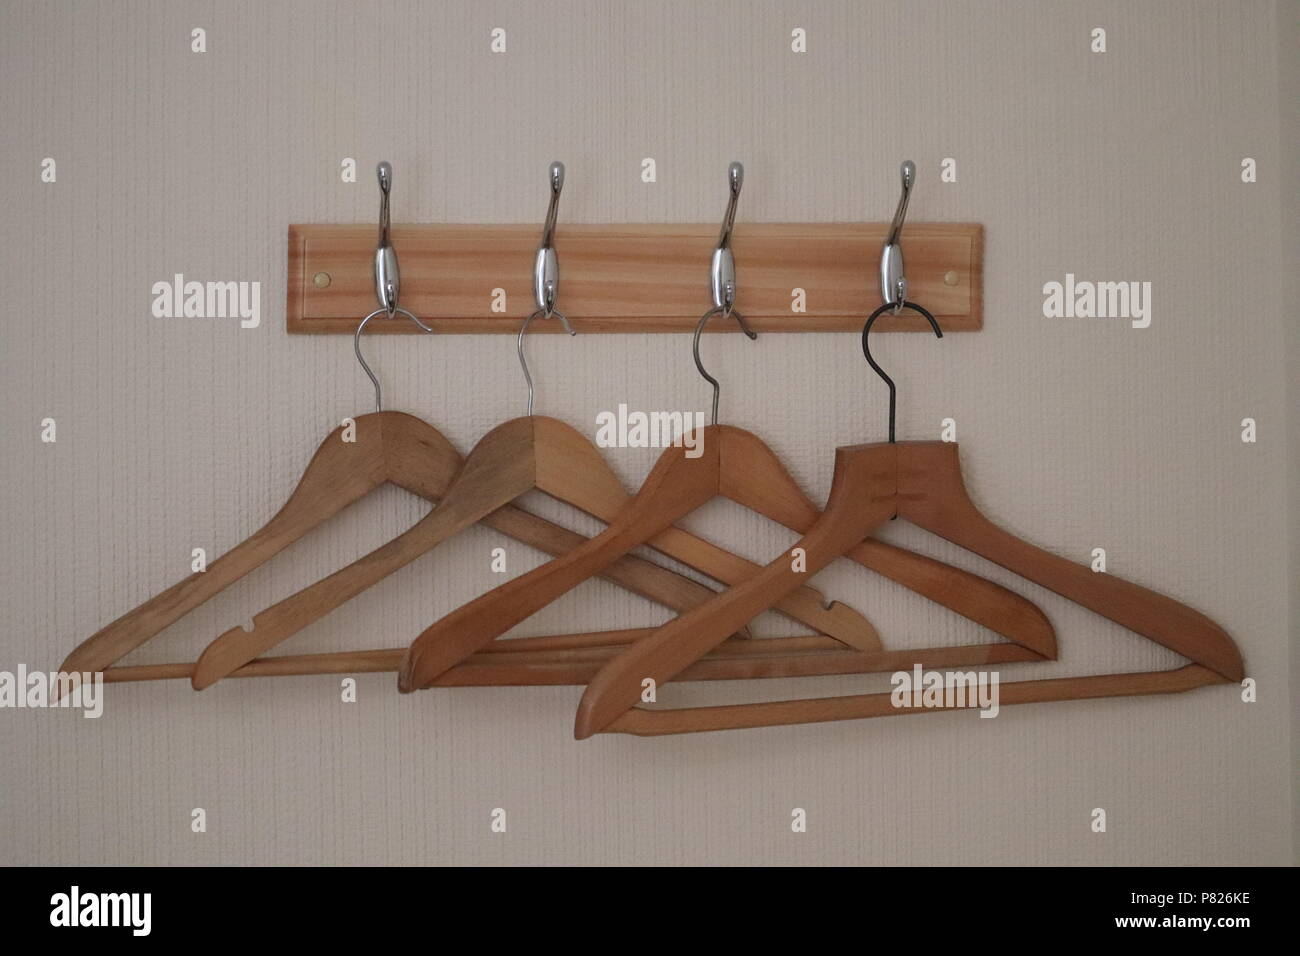 Coat Hangers Stock Photos Coat Hangers Stock Images Alamy